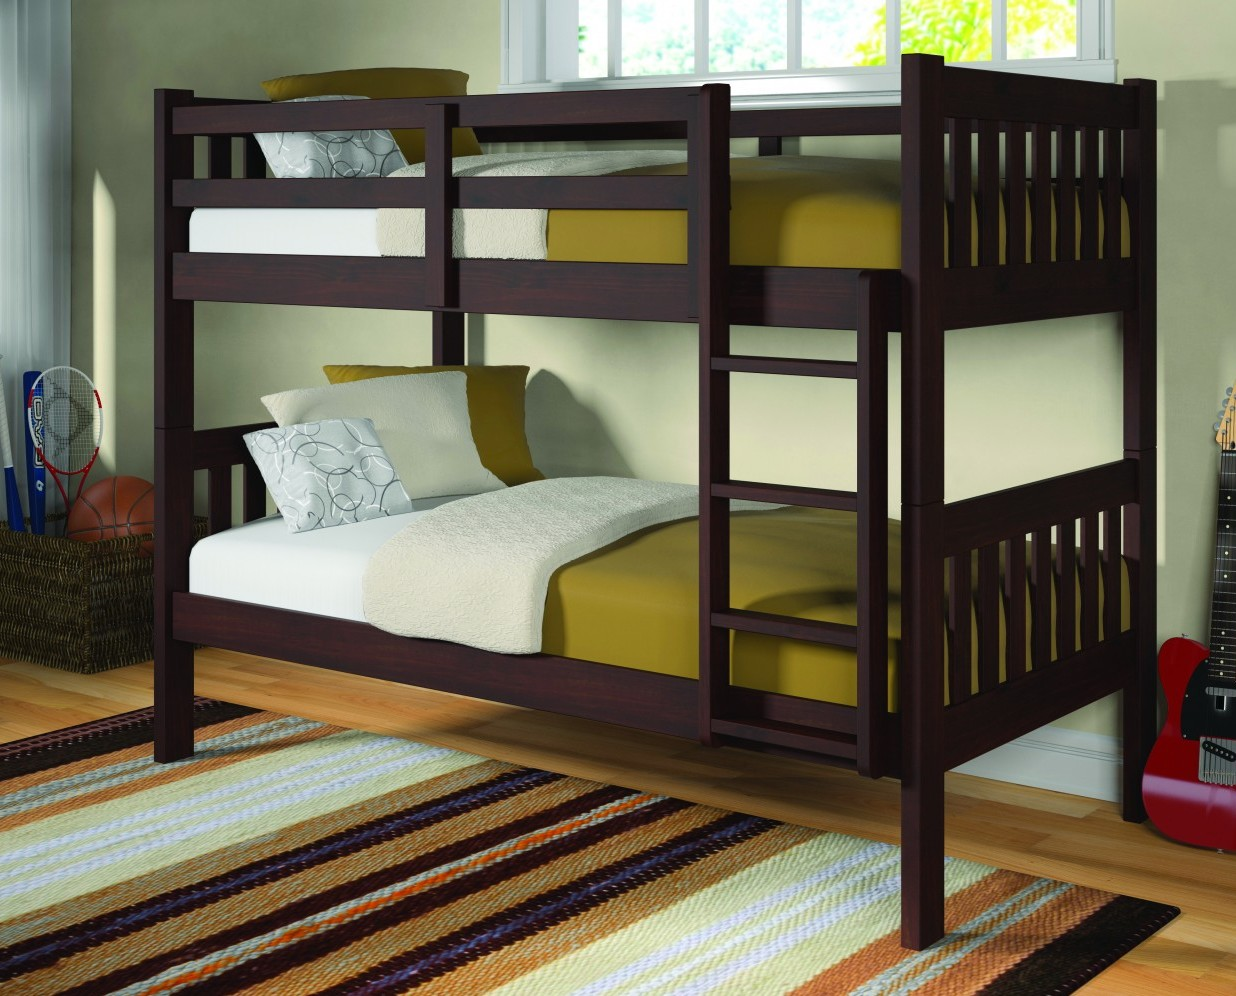 Mission bunk bed frame twin twin for Bunk bed frame